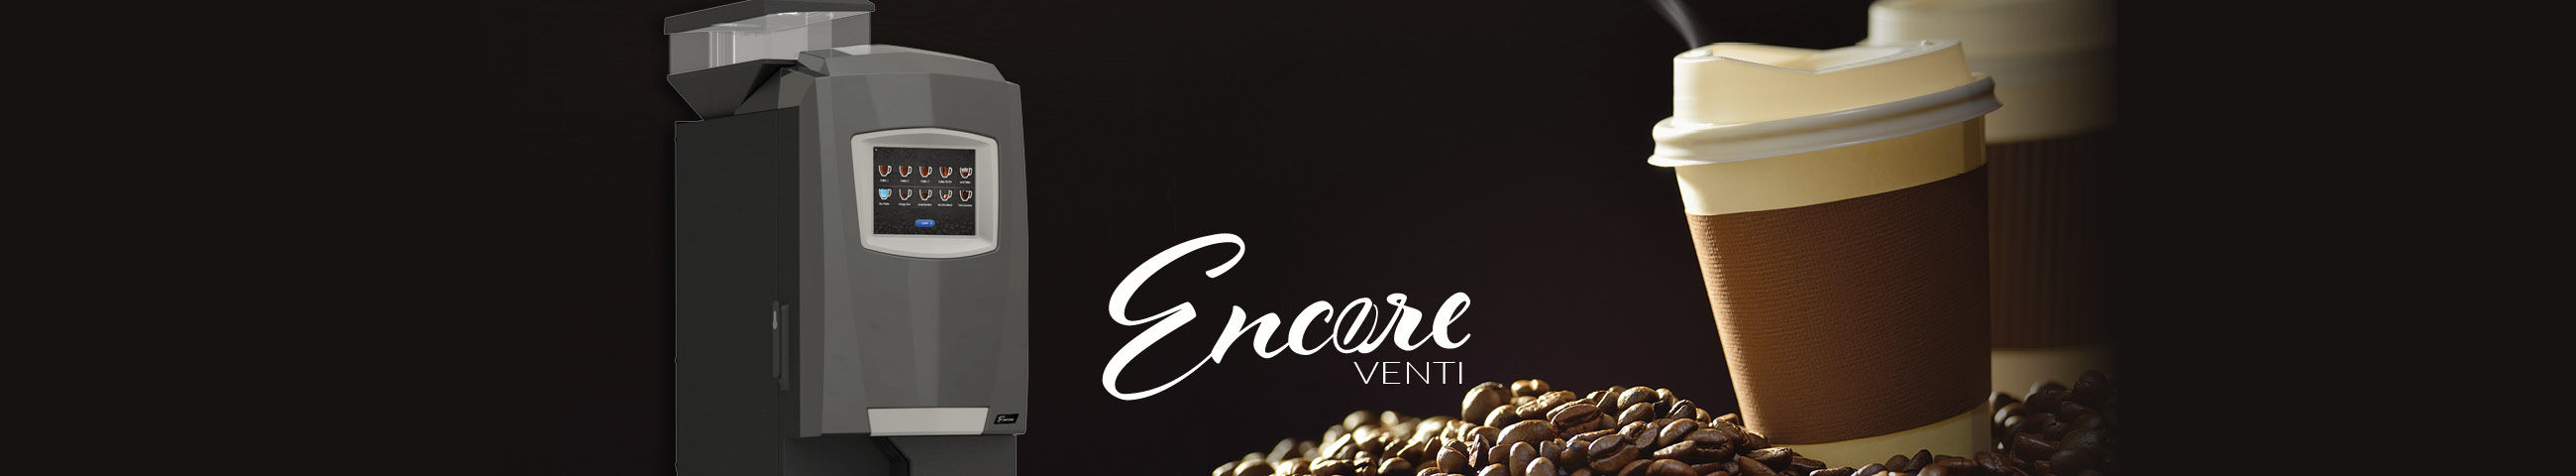 The Encore Venti